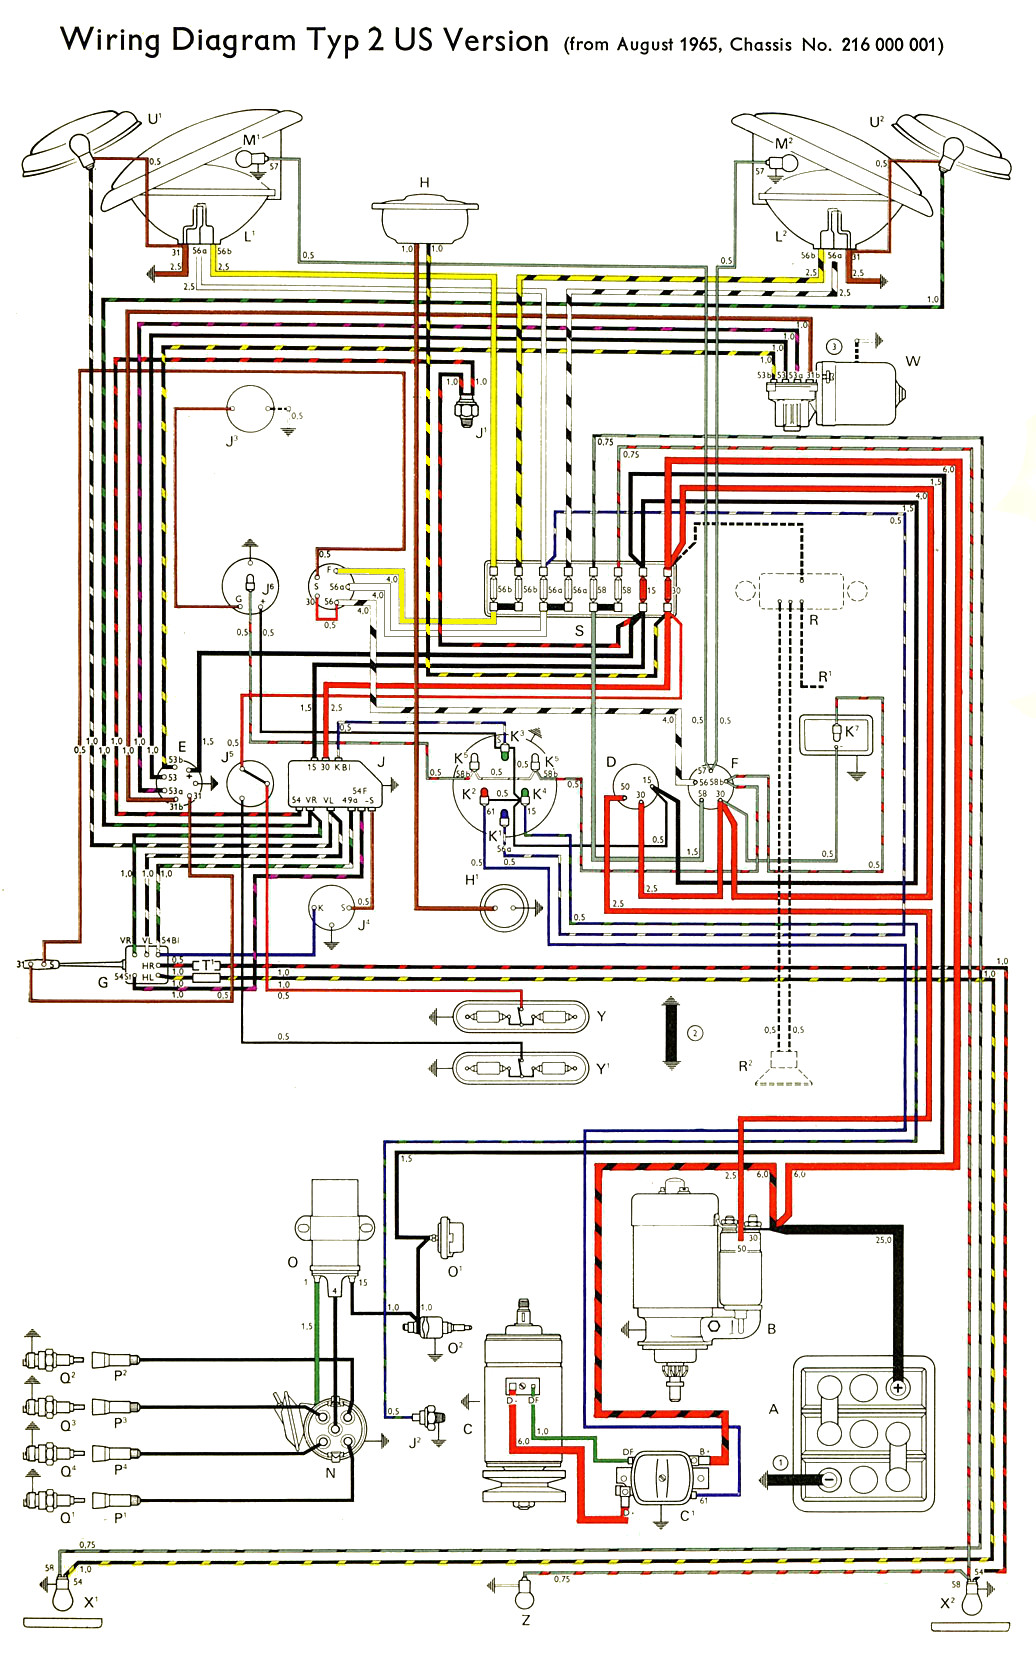 TheSamba.com :: Type 2 Wiring Diagrams on cadillac fuse box diagram, 1963 cadillac vacuum diagrams, cadillac wiring parts, cadillac ac diagram, cadillac deville starter wiring, cadillac troubleshooting, 2000 cadillac eldorado electrical diagrams, cadillac manual transmission,